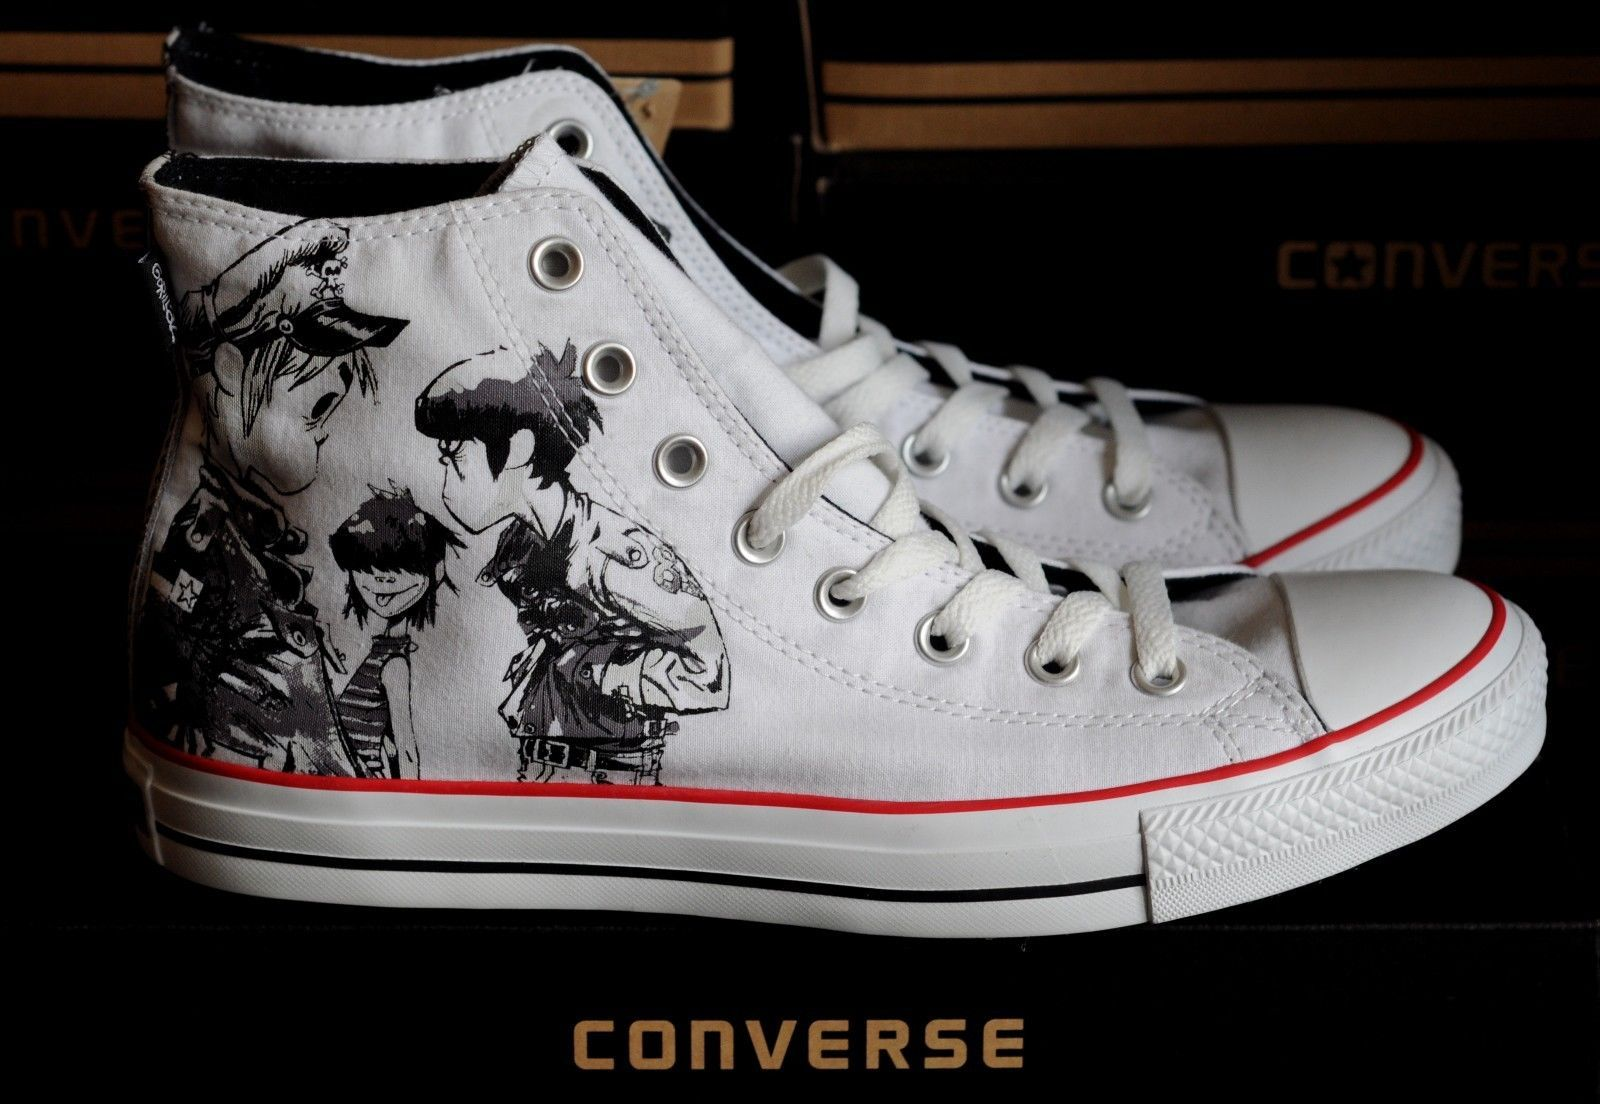 ccce648552b3 Gorillaz Converse All Star Chuck Taylor Limited Edition Comic rare Music  Edition